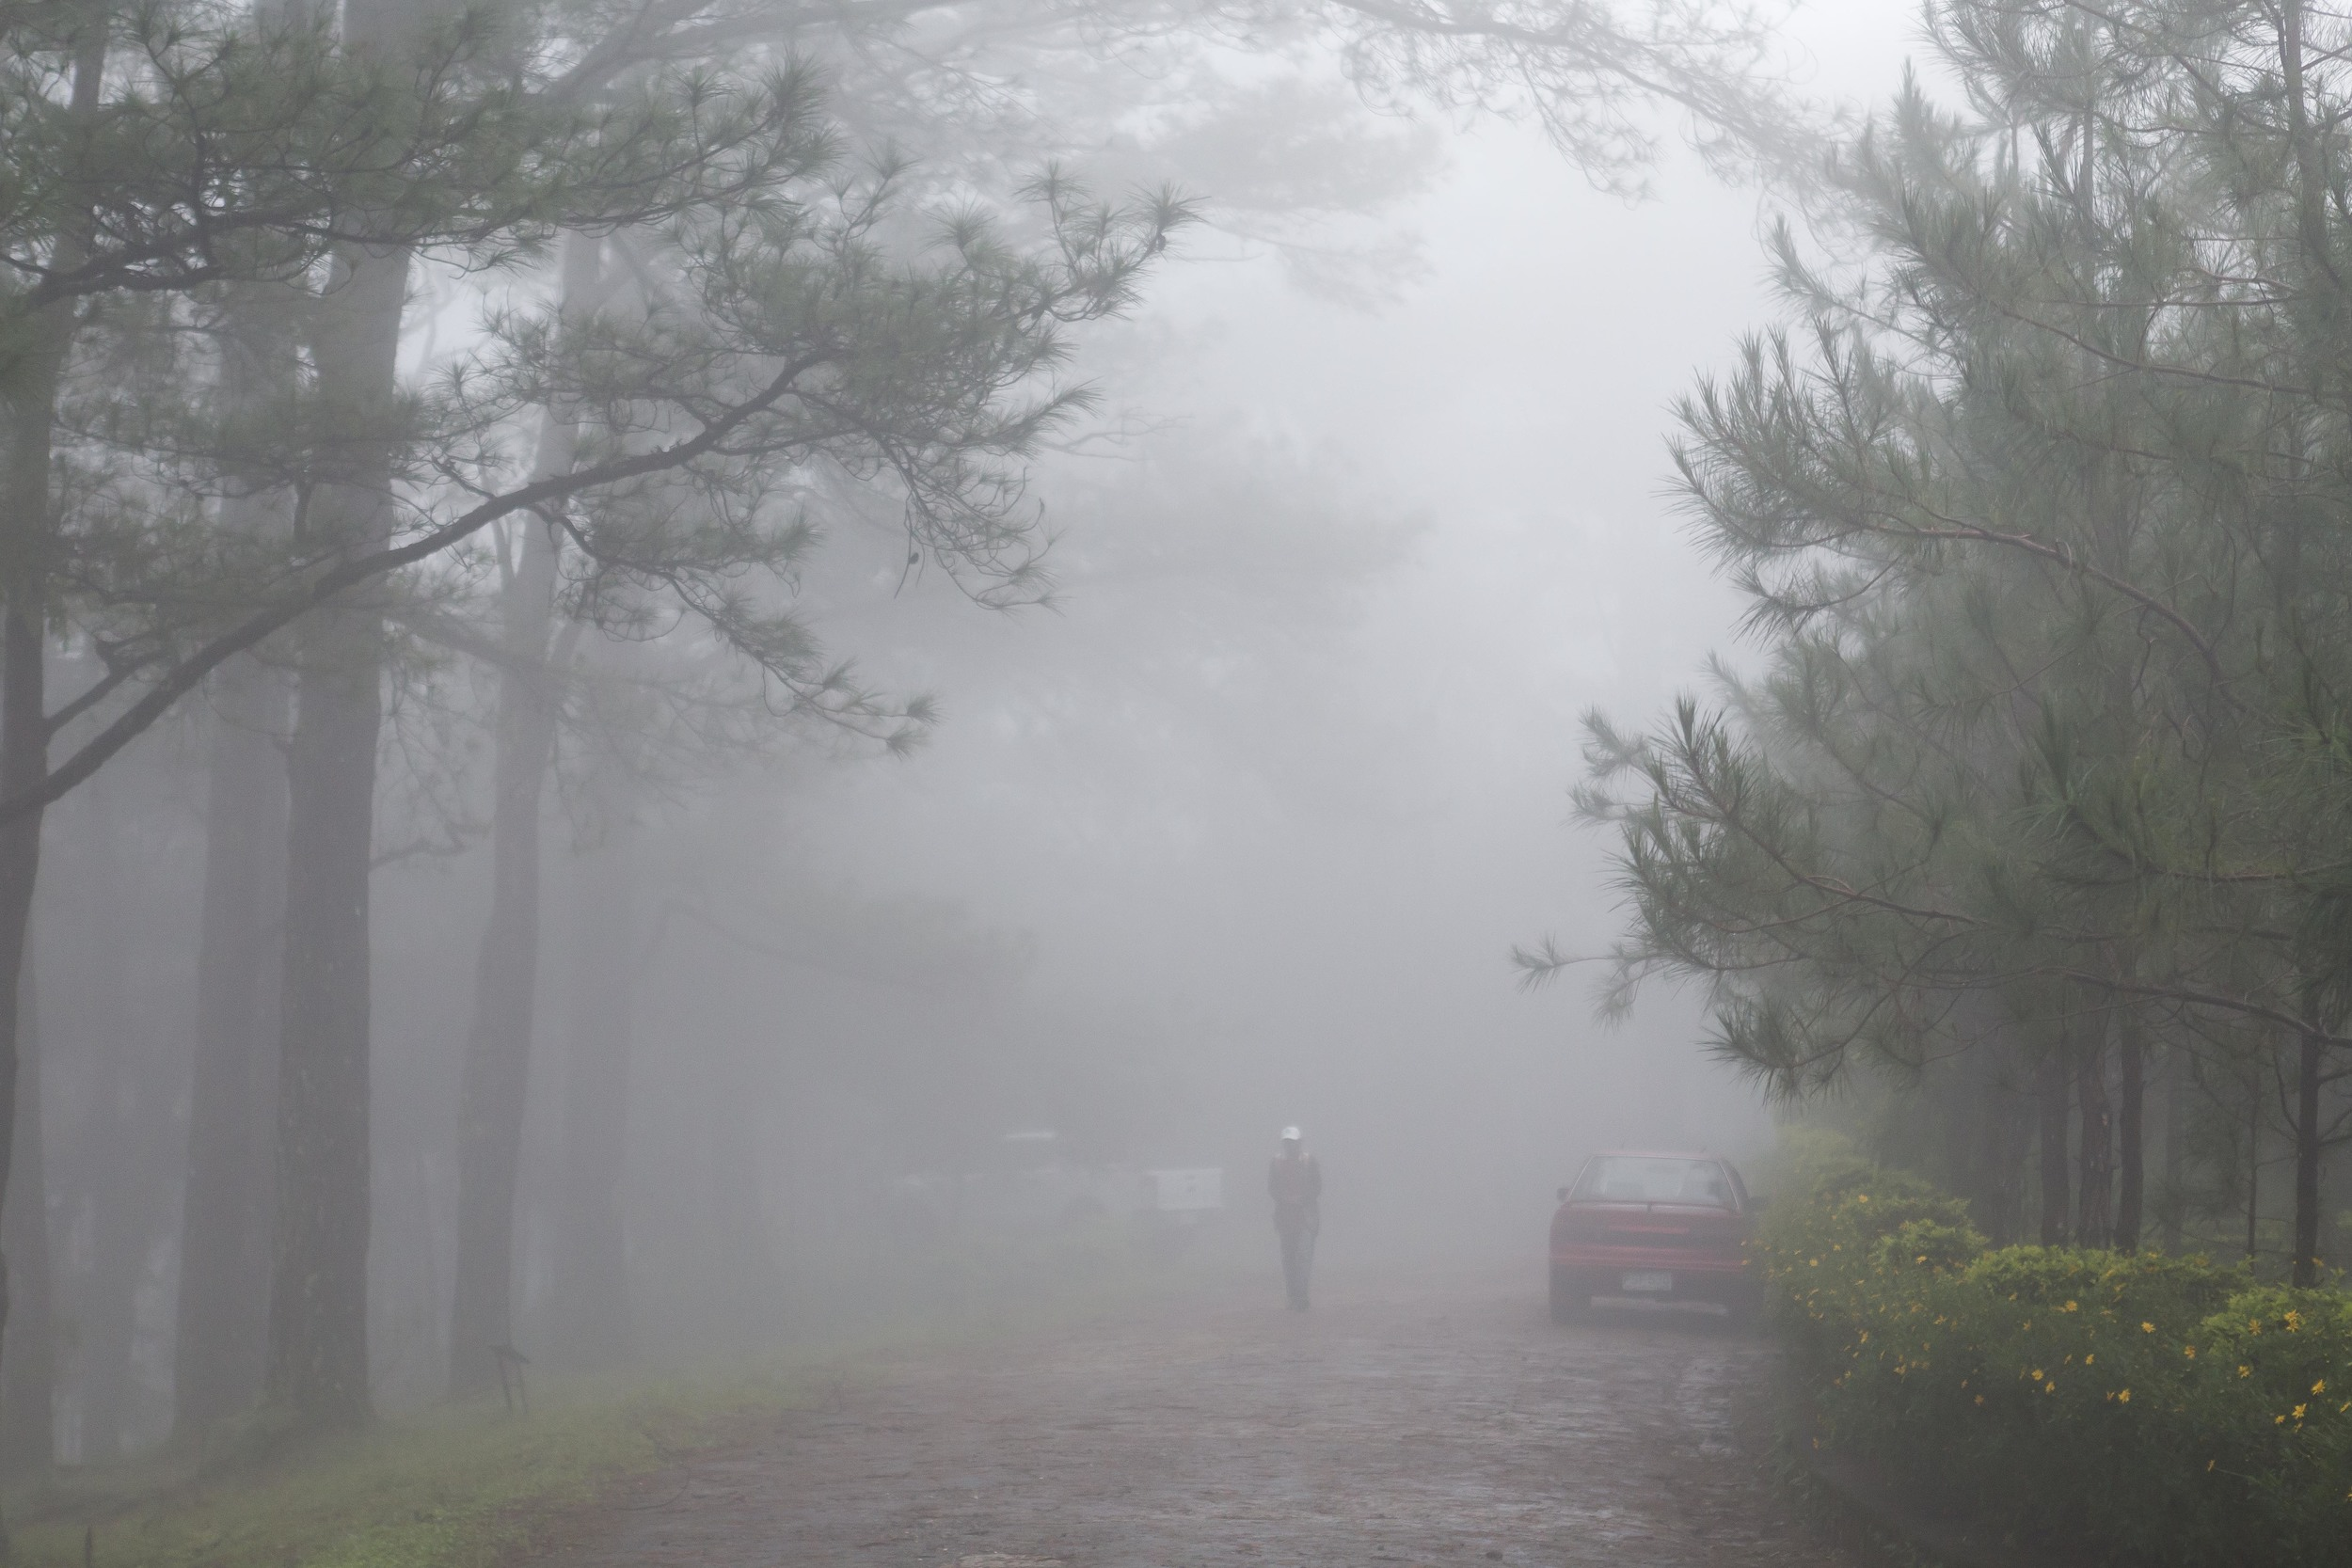 Rare moments when we experience thick fog!